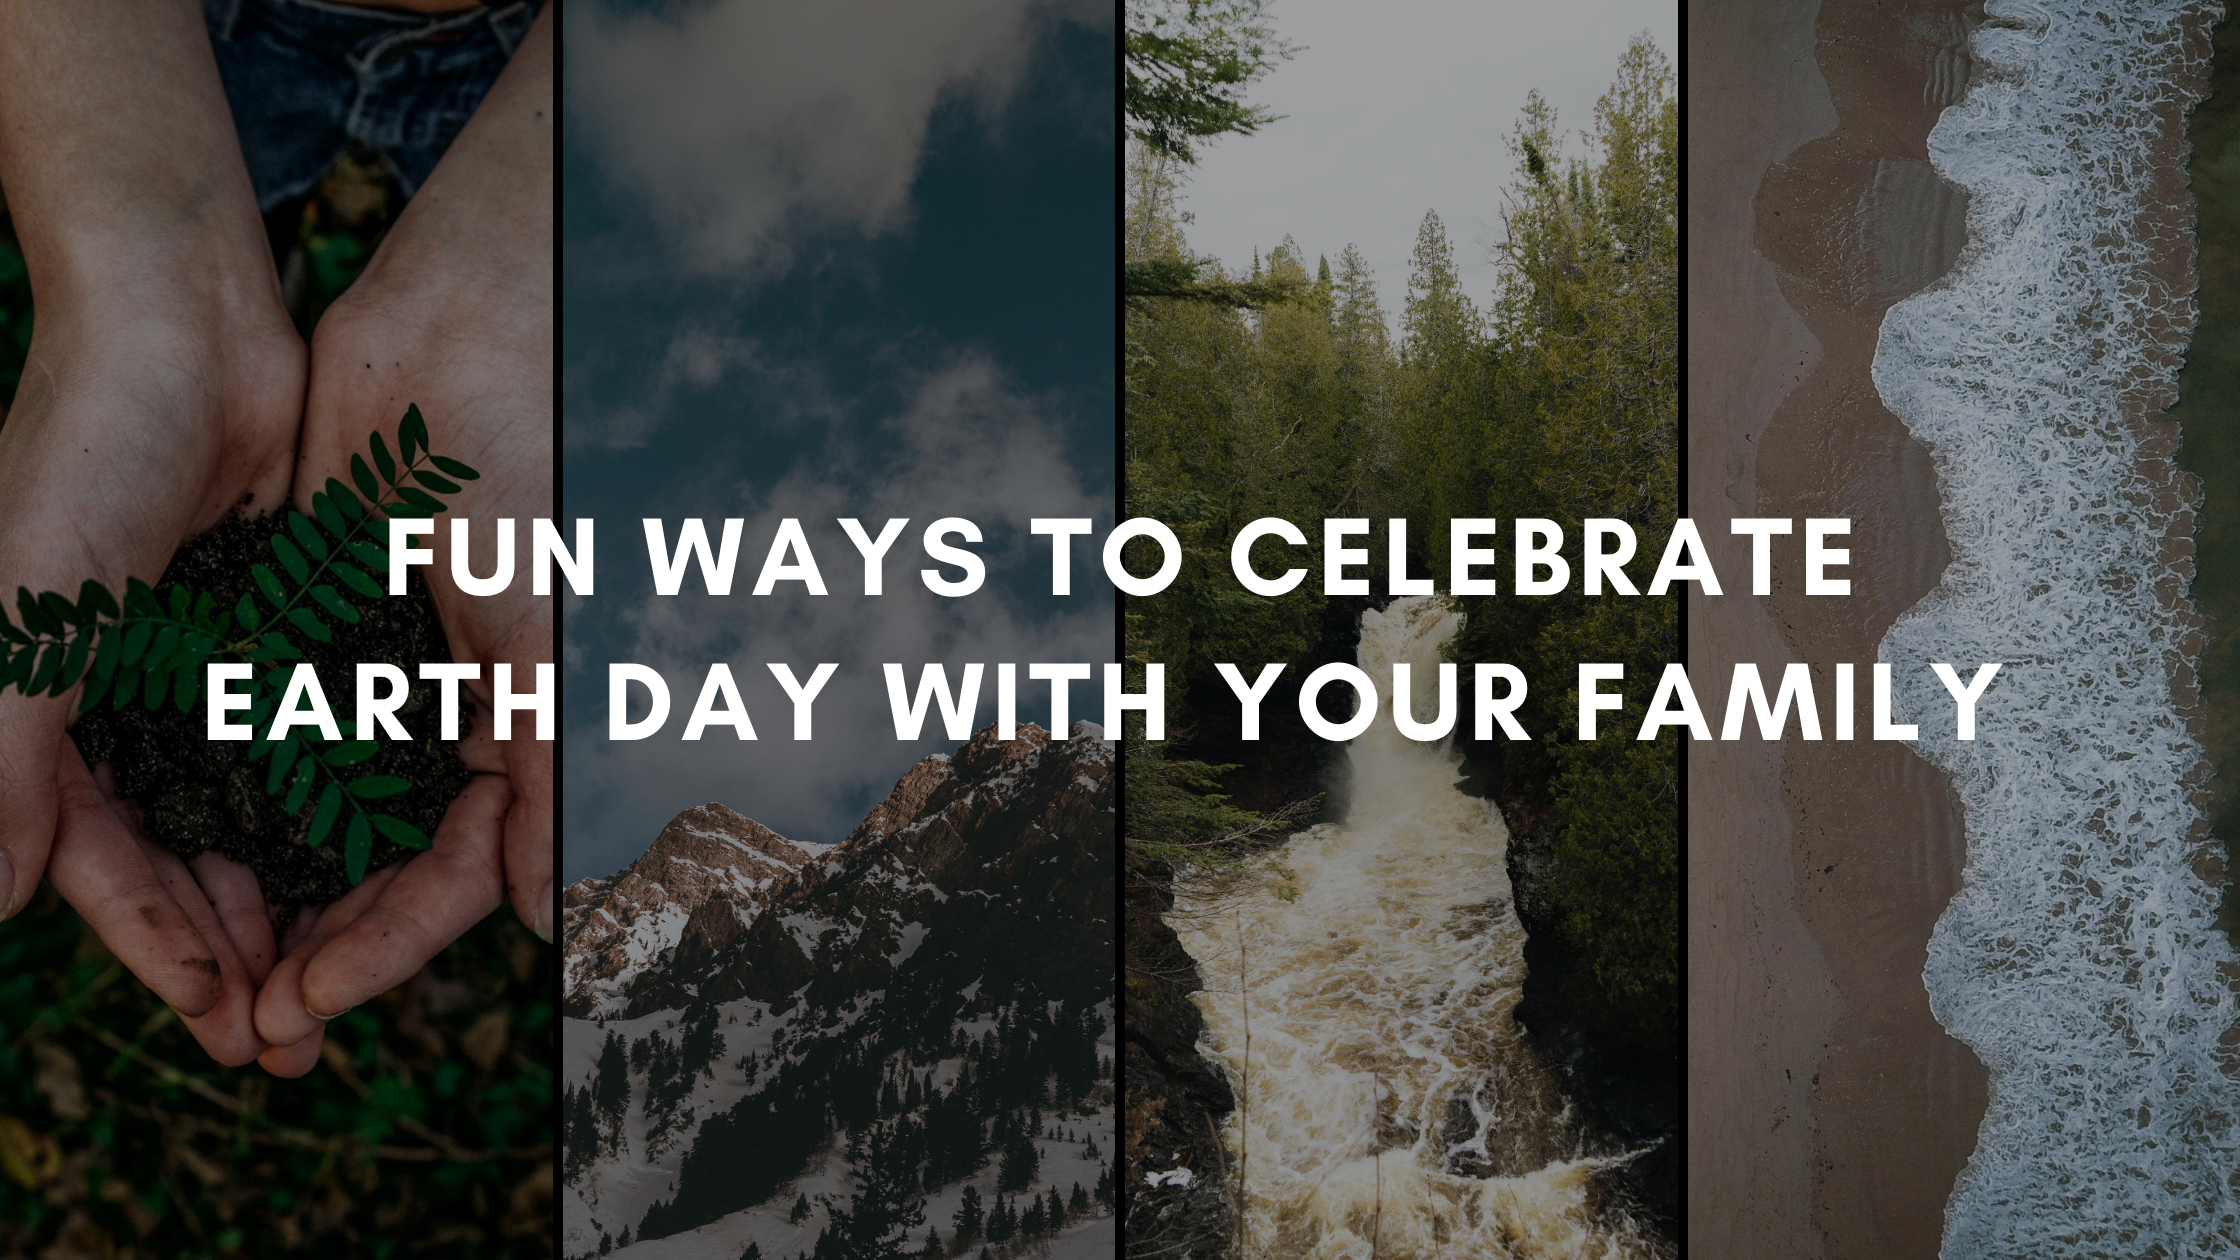 Fun Ways to Celebrate Earth Day with Your Family